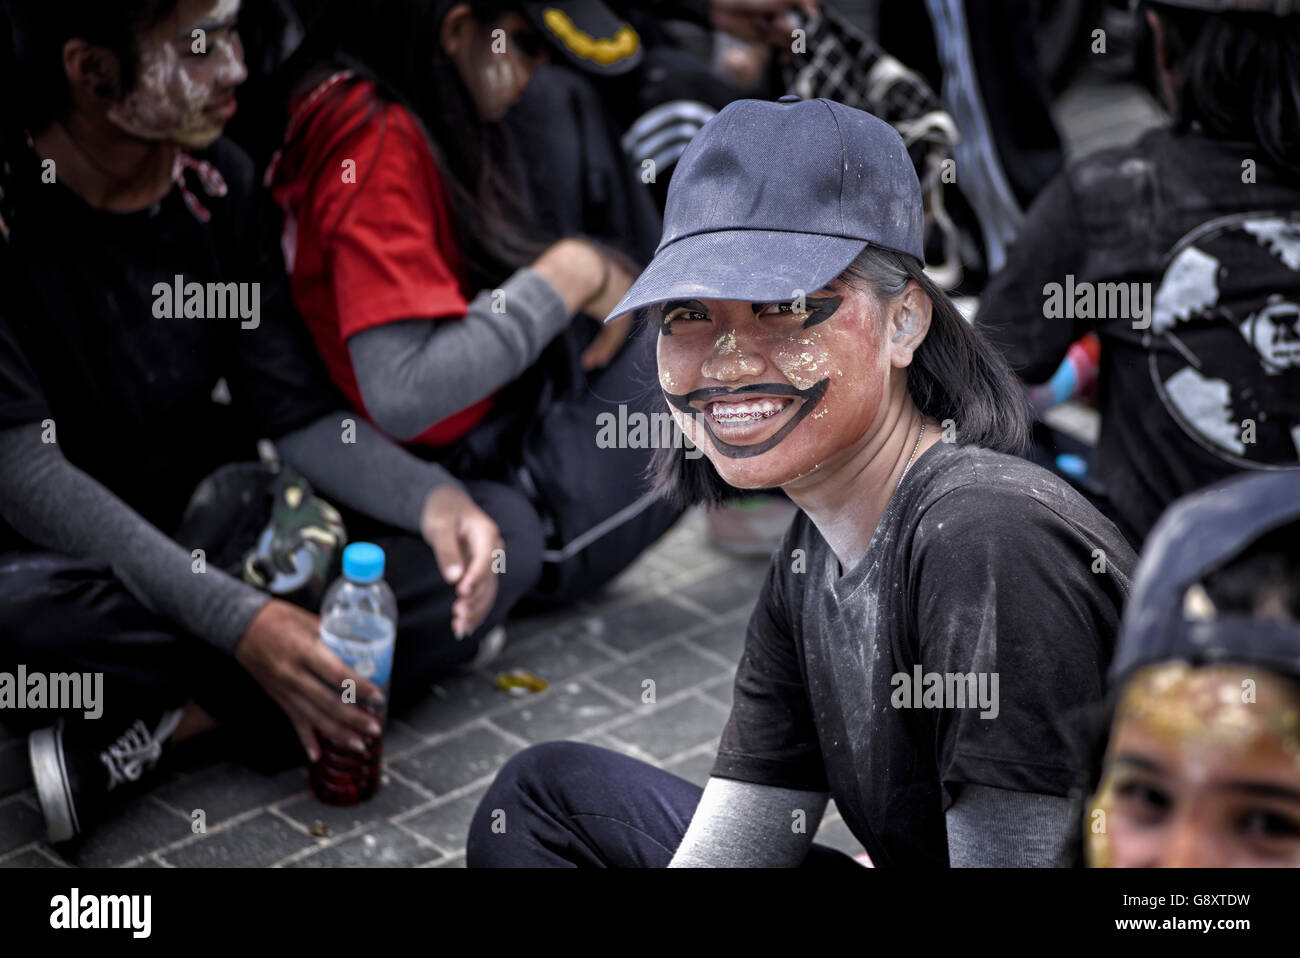 Thai teenagers staging a street mocking protest against excessive vanity by applying farcical face make up. Thailand - Stock Image